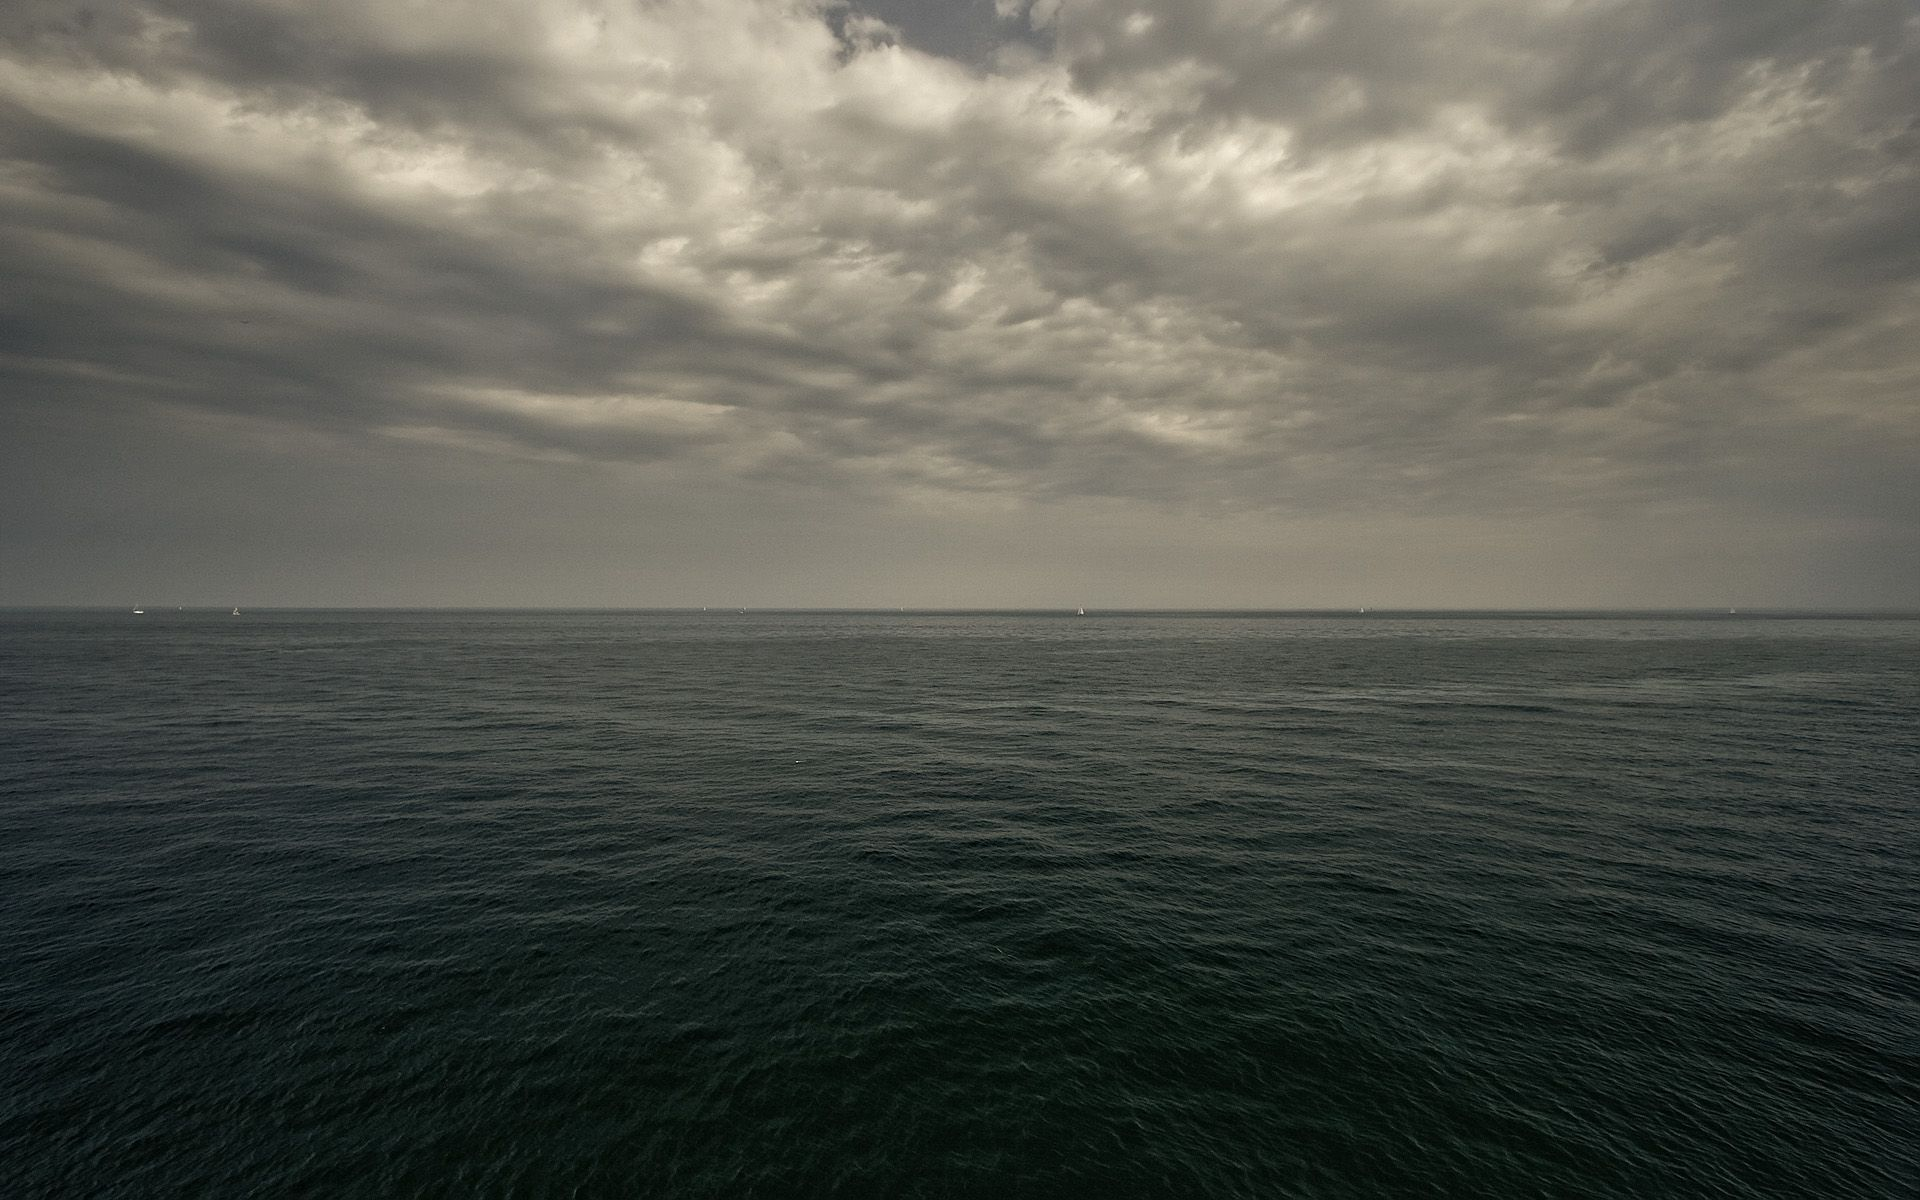 Wallpapers Sea Dark Desktop Garden Oceans Worlds Dark Wallpaper Cloud Wallpaper Ocean Wallpaper